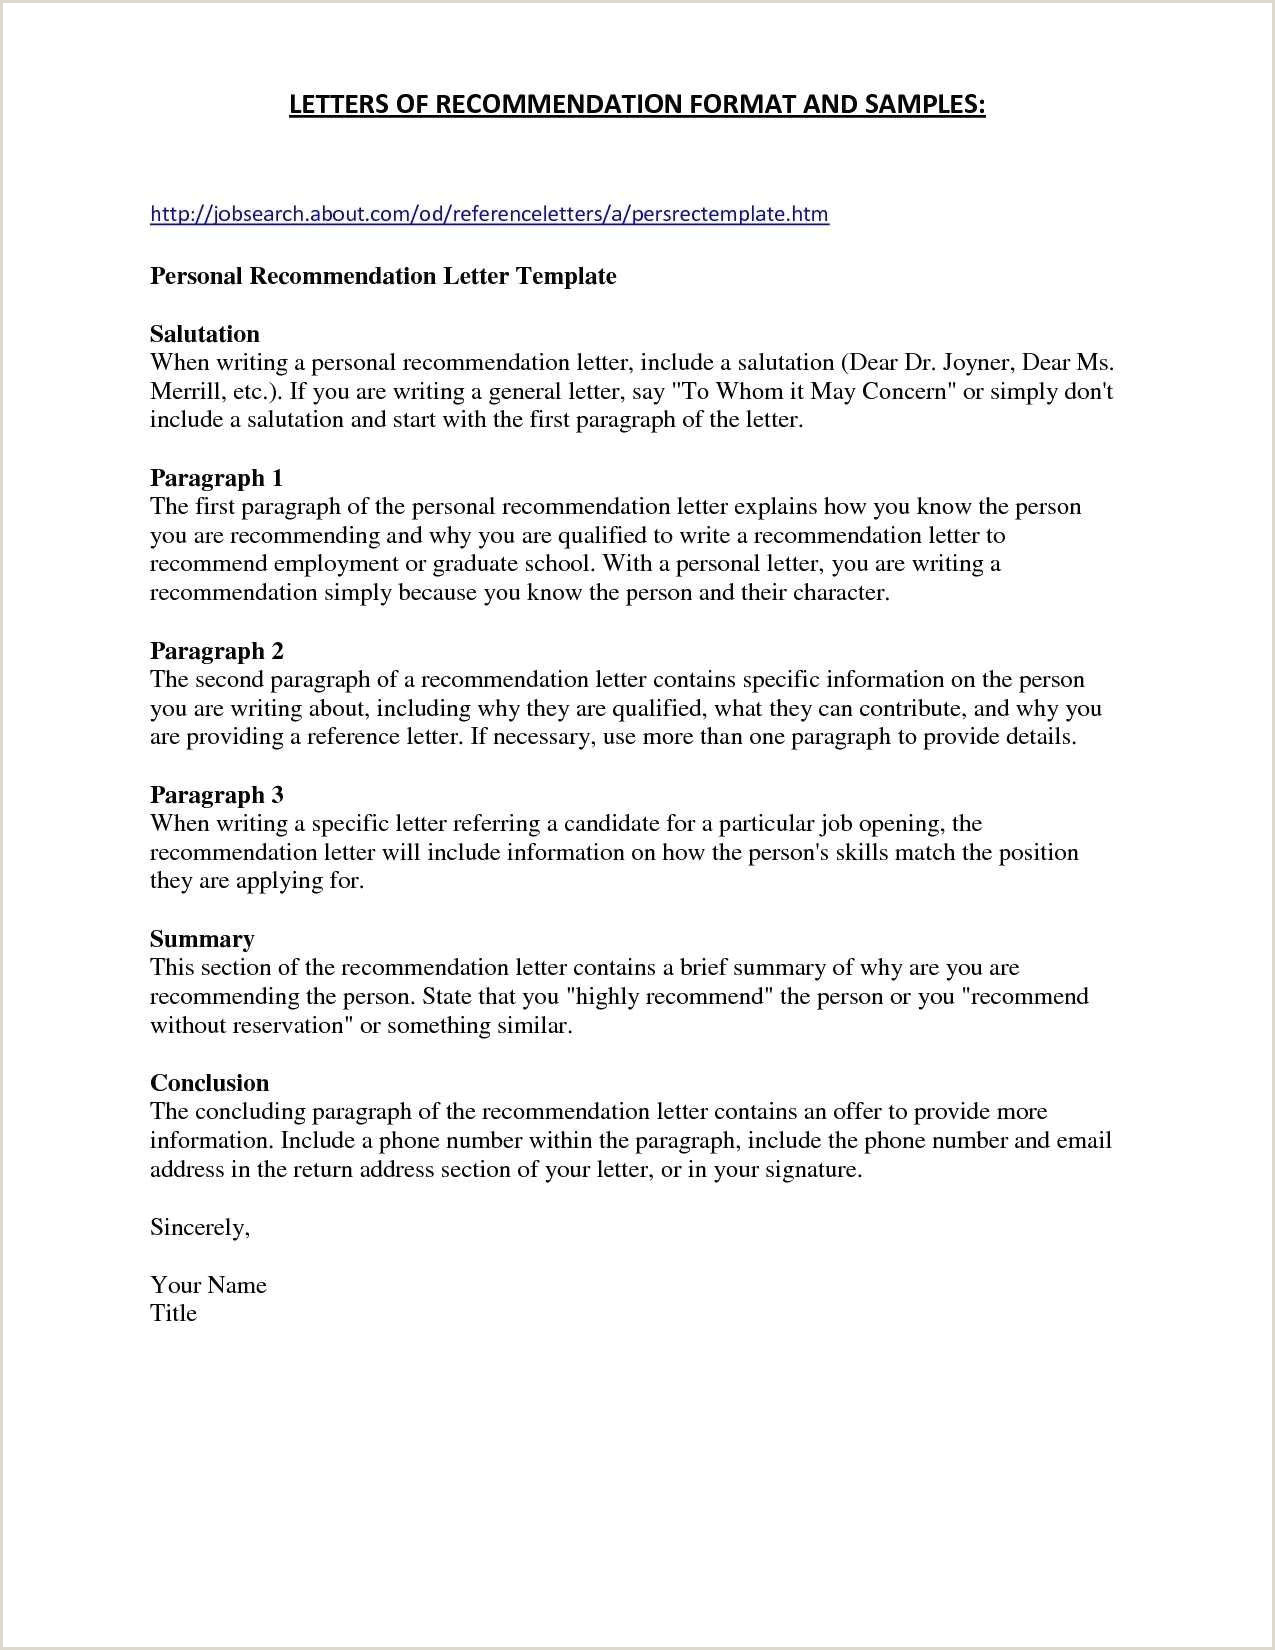 Personal Loan Letter Template Downloadable Personal Loan